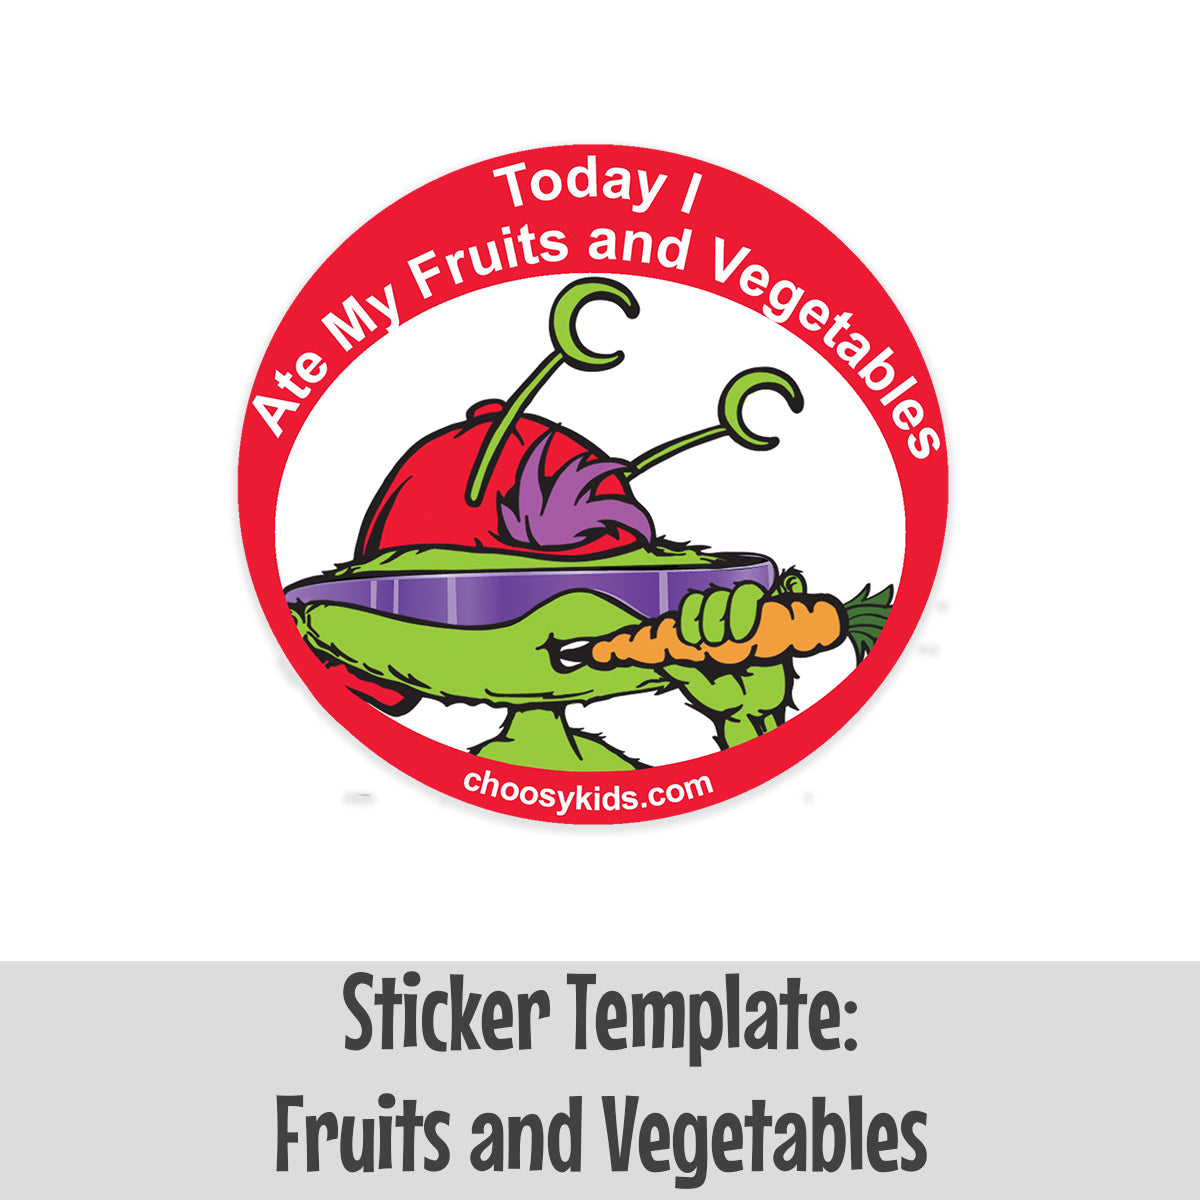 Sticker Template: Fruits and Vegetables